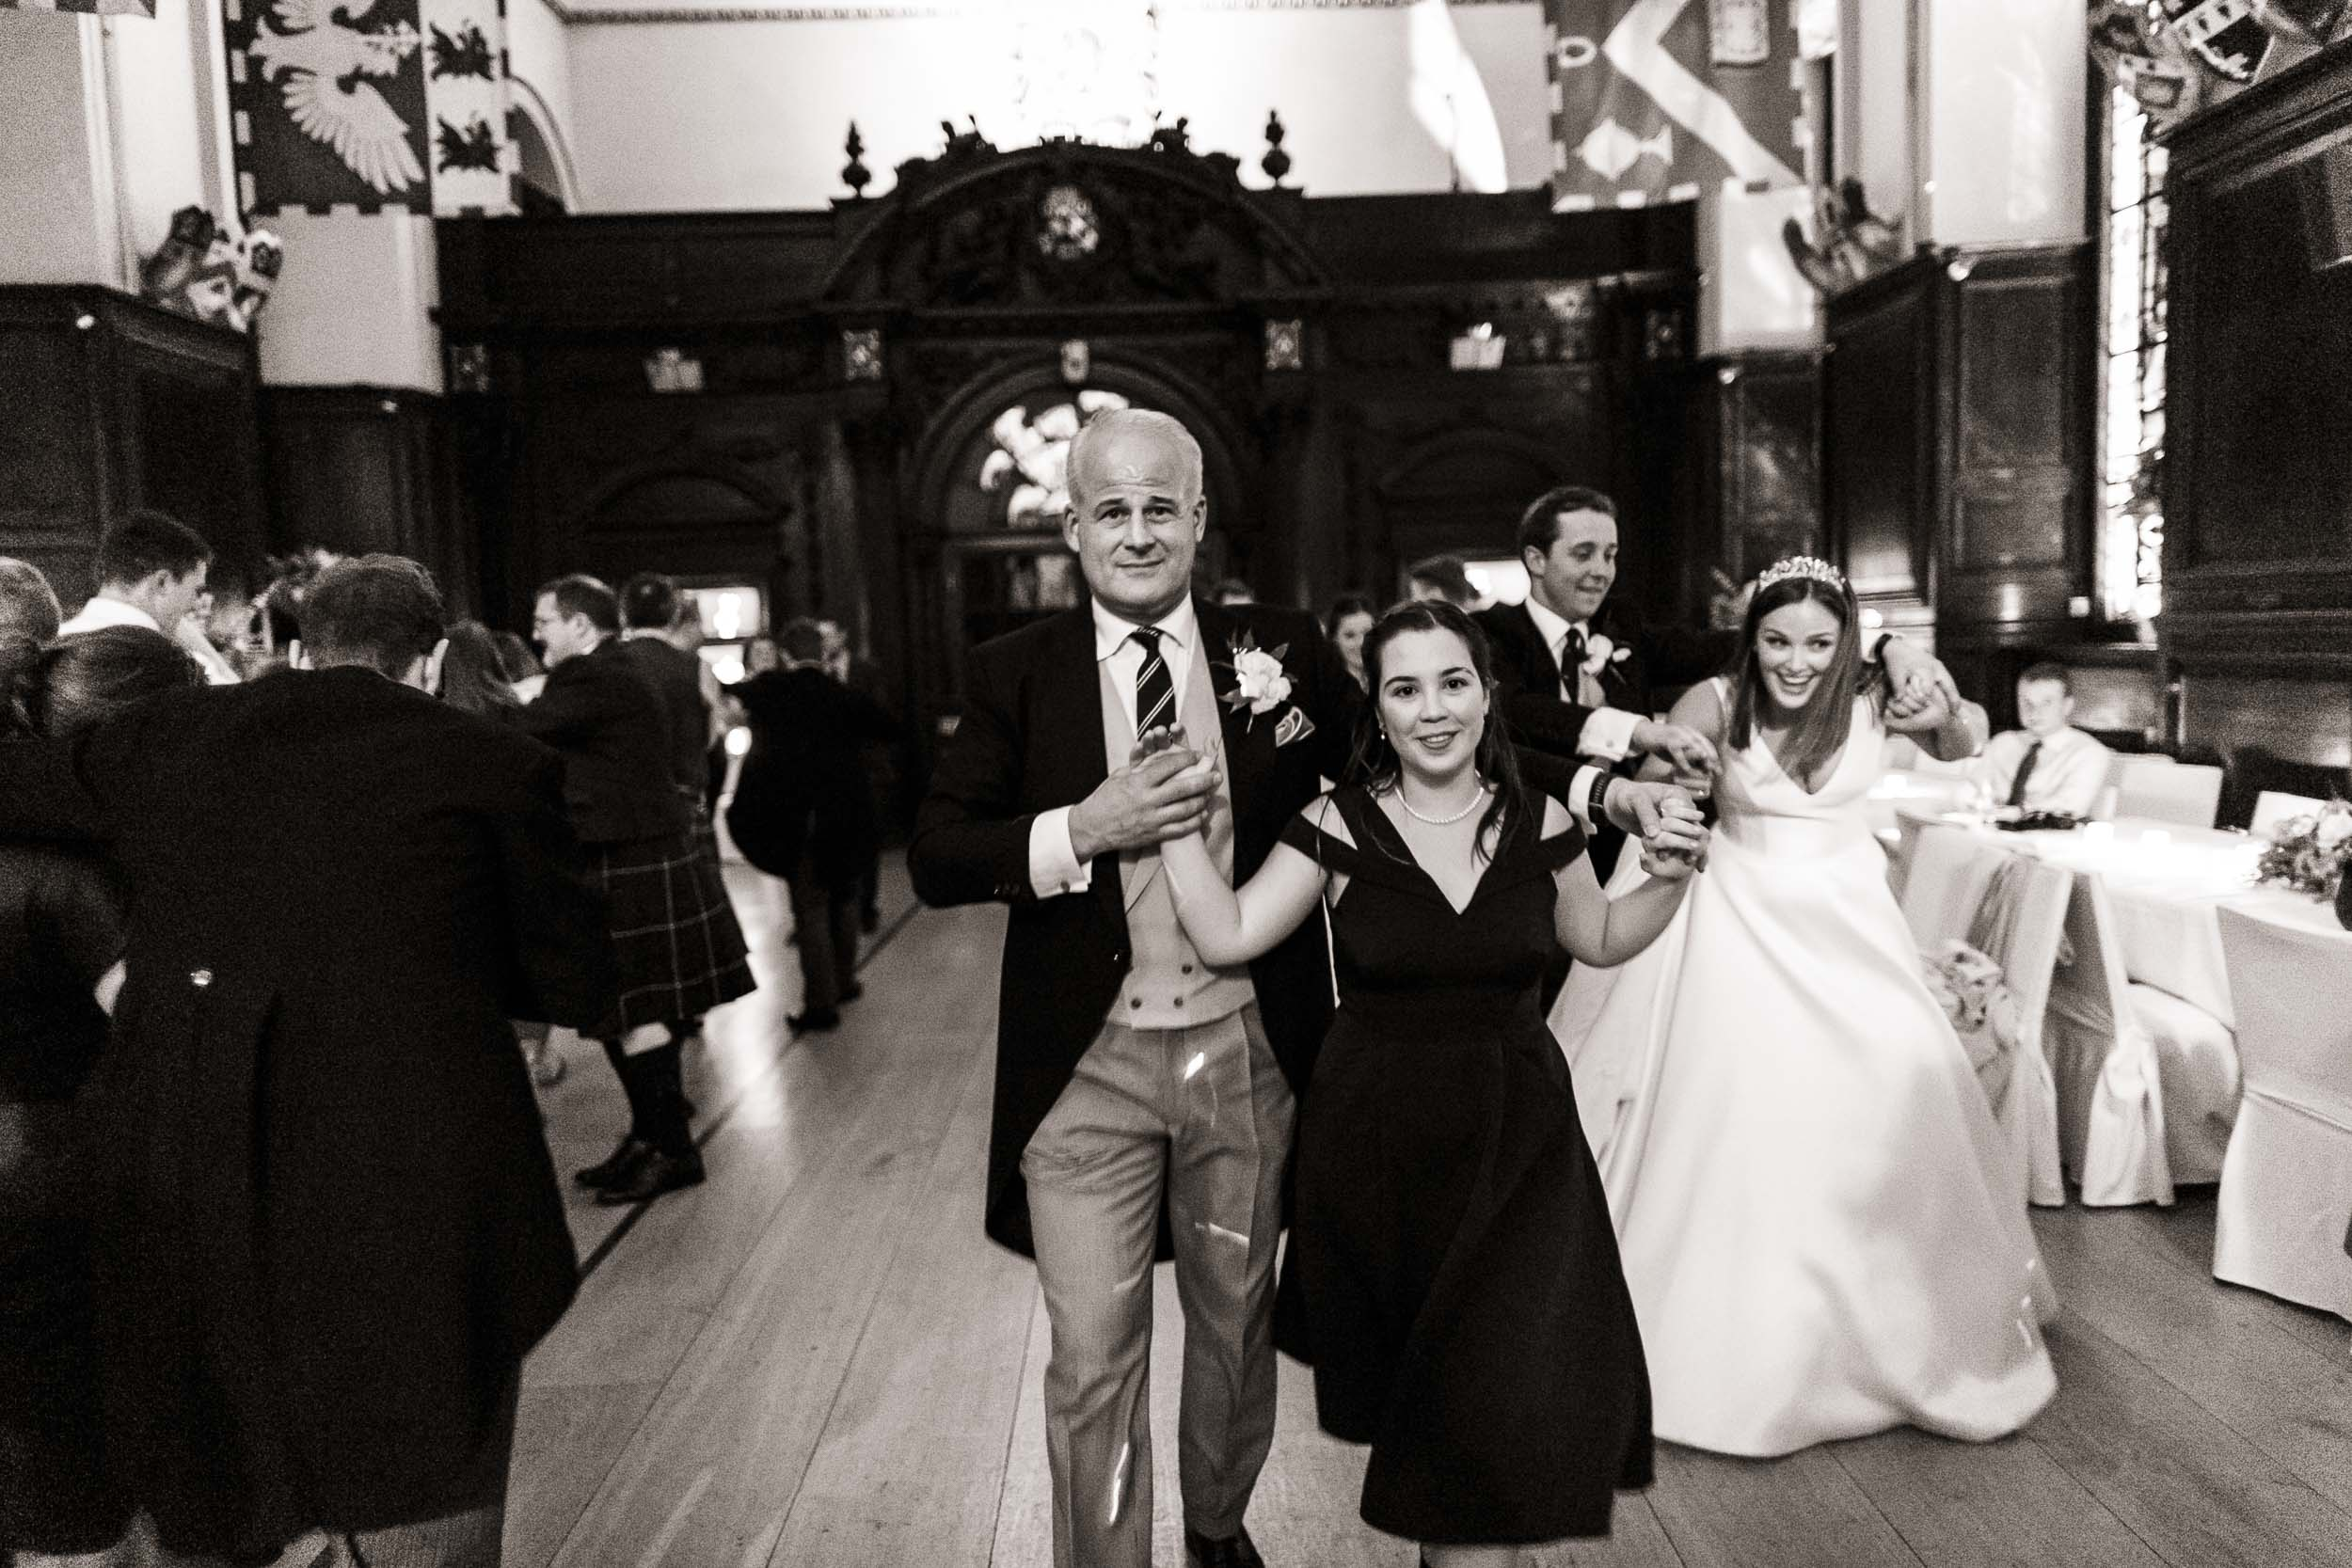 stationers-hall-wedding-photographer-london 126.jpg